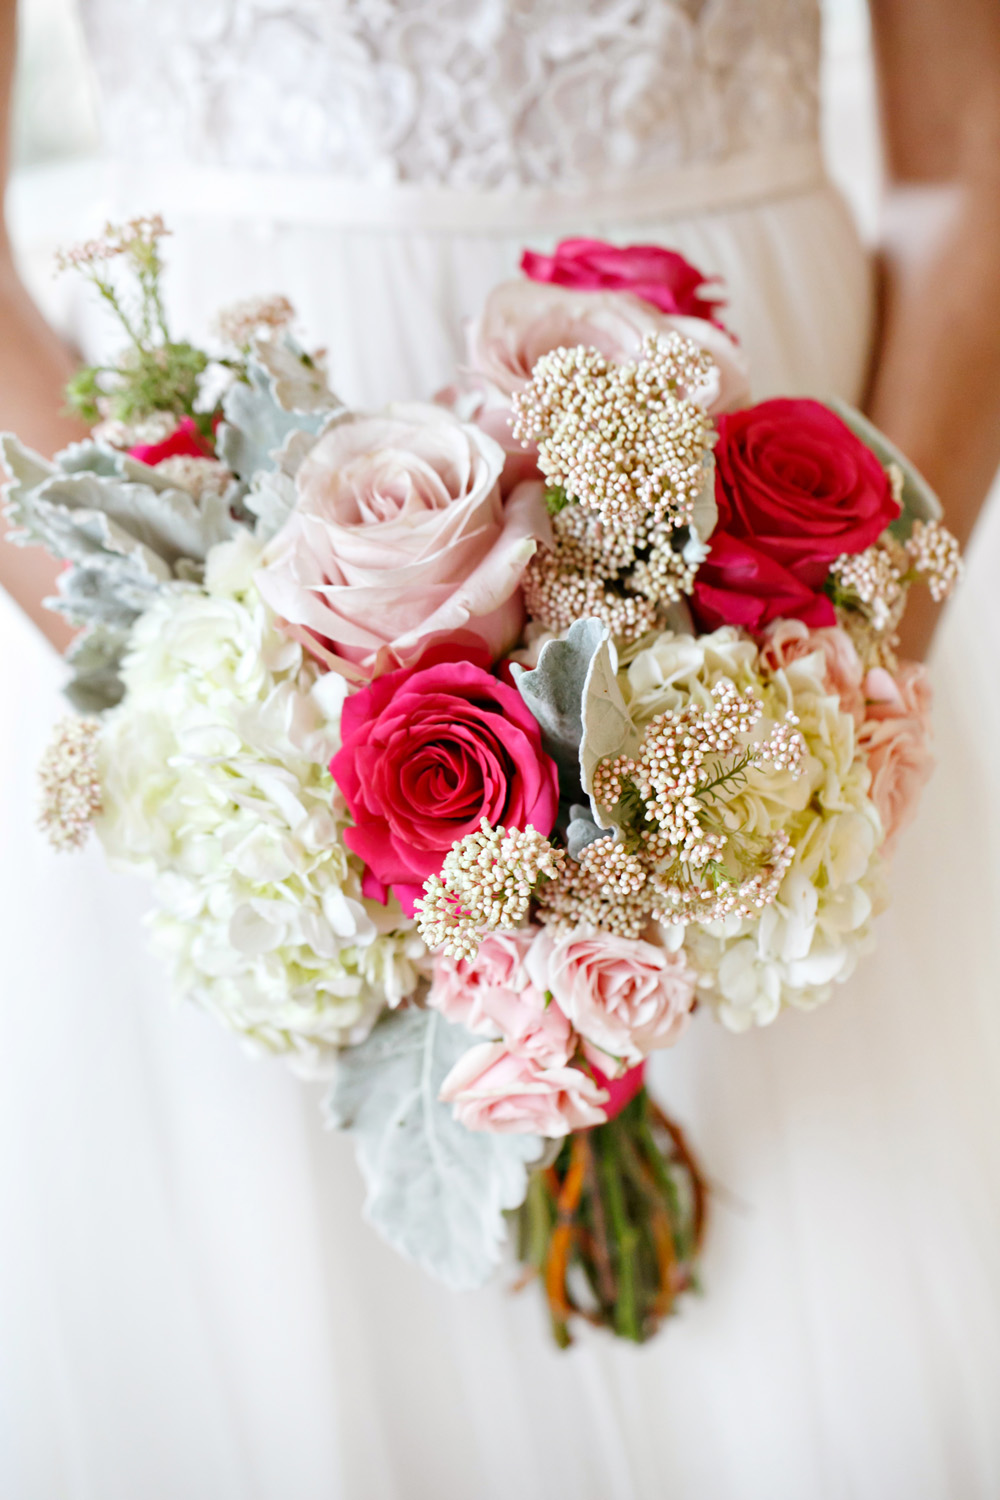 Spring Elopement Inspiration by Amy Anaiz Photography  (19)